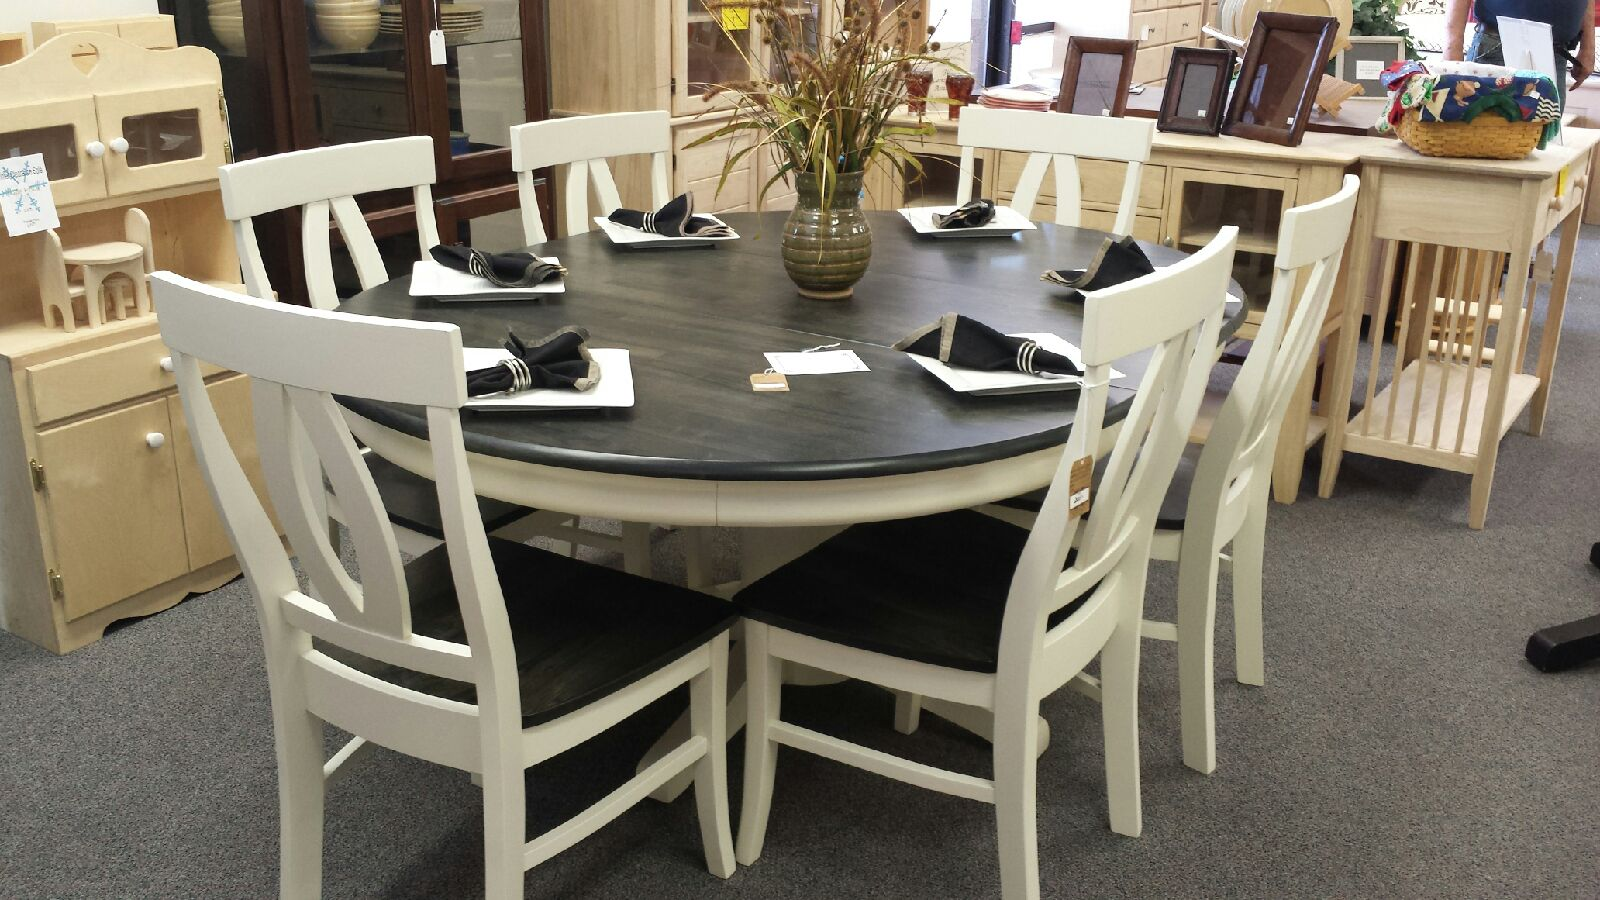 Our Six Piece Dining Room Set Finished In General Finishes Antique White  Milk Paint And Black Gel Stain. Stunningly Beautiful! Also A Pine Corner  Cabinet. ...